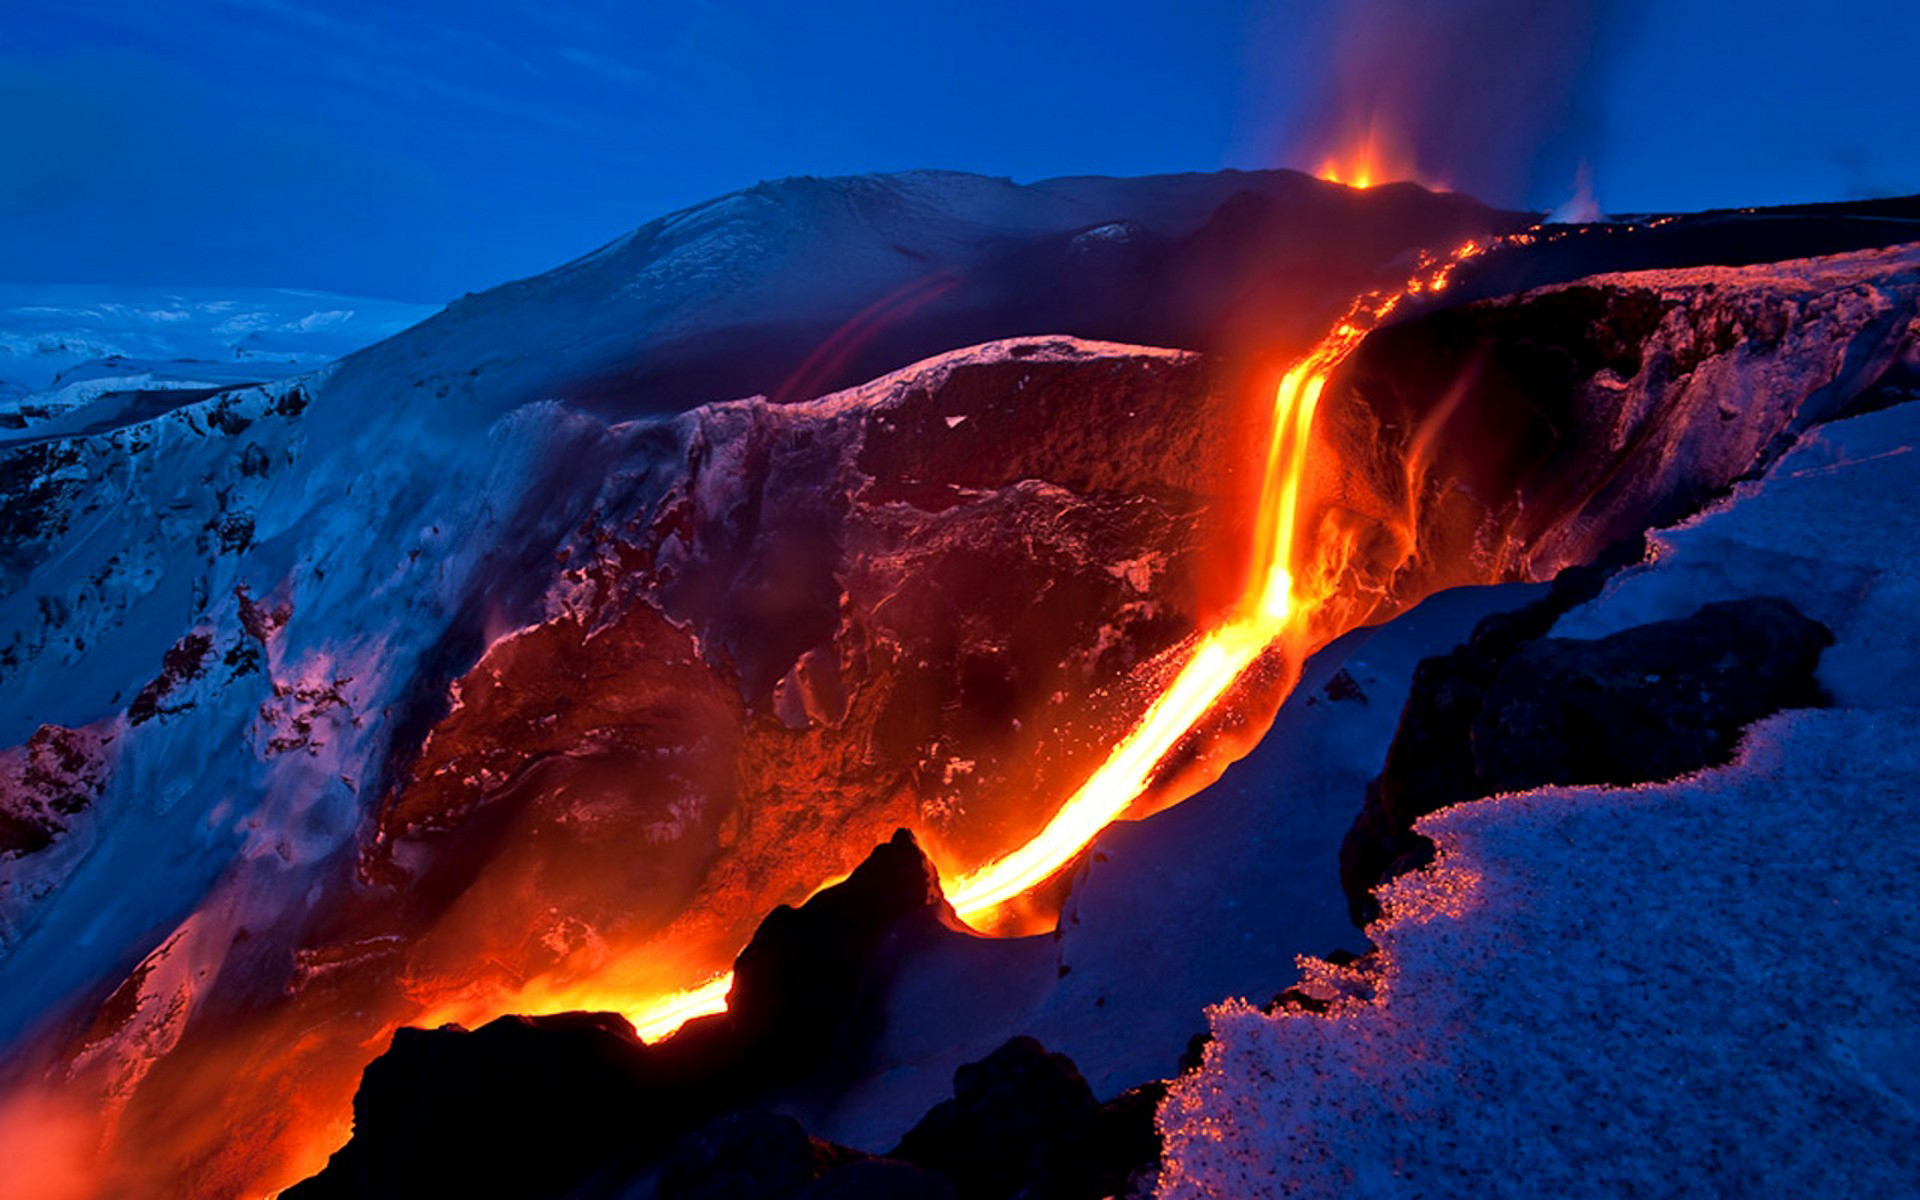 snow-lava-izberzhenie-magma-temperature-mountains-slopes-of-the-volcano-evening-channel-flow